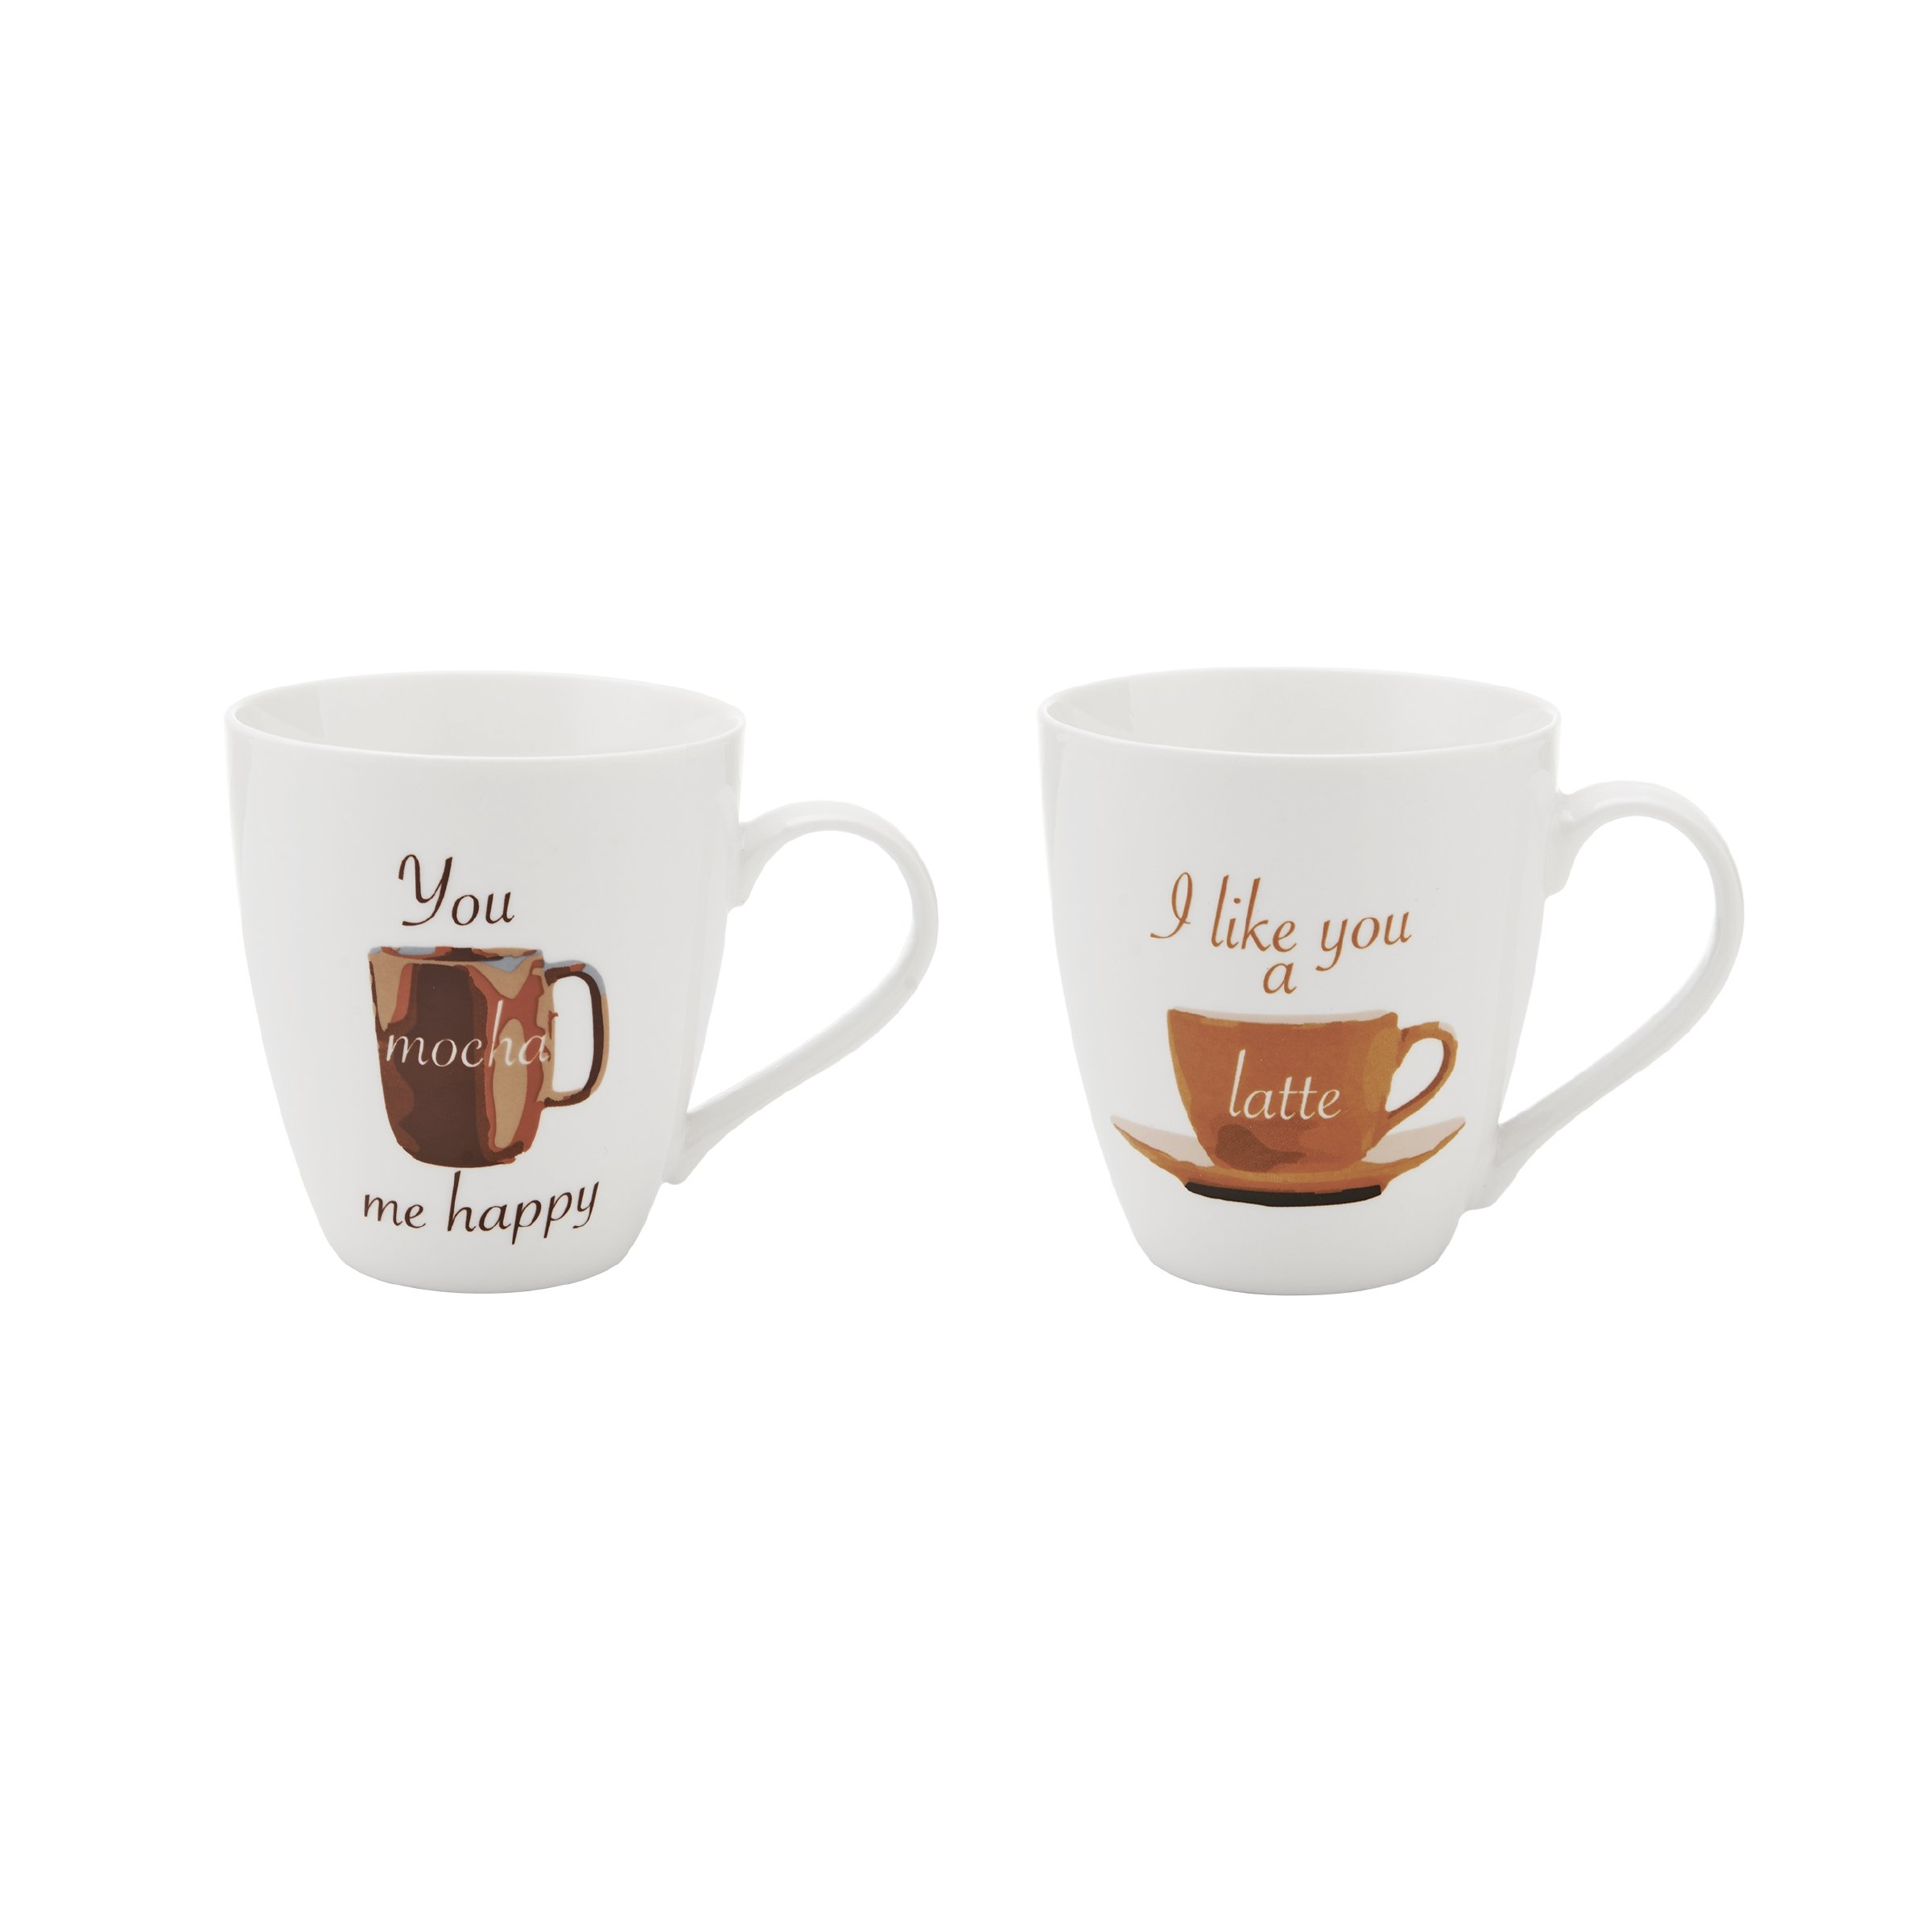 Pfaltzgraff Everyday Mug, You Mocha Me Happy and I Like You A Latte, 18-Ounce, Set Of 2-5161883 by Pfaltzgraff